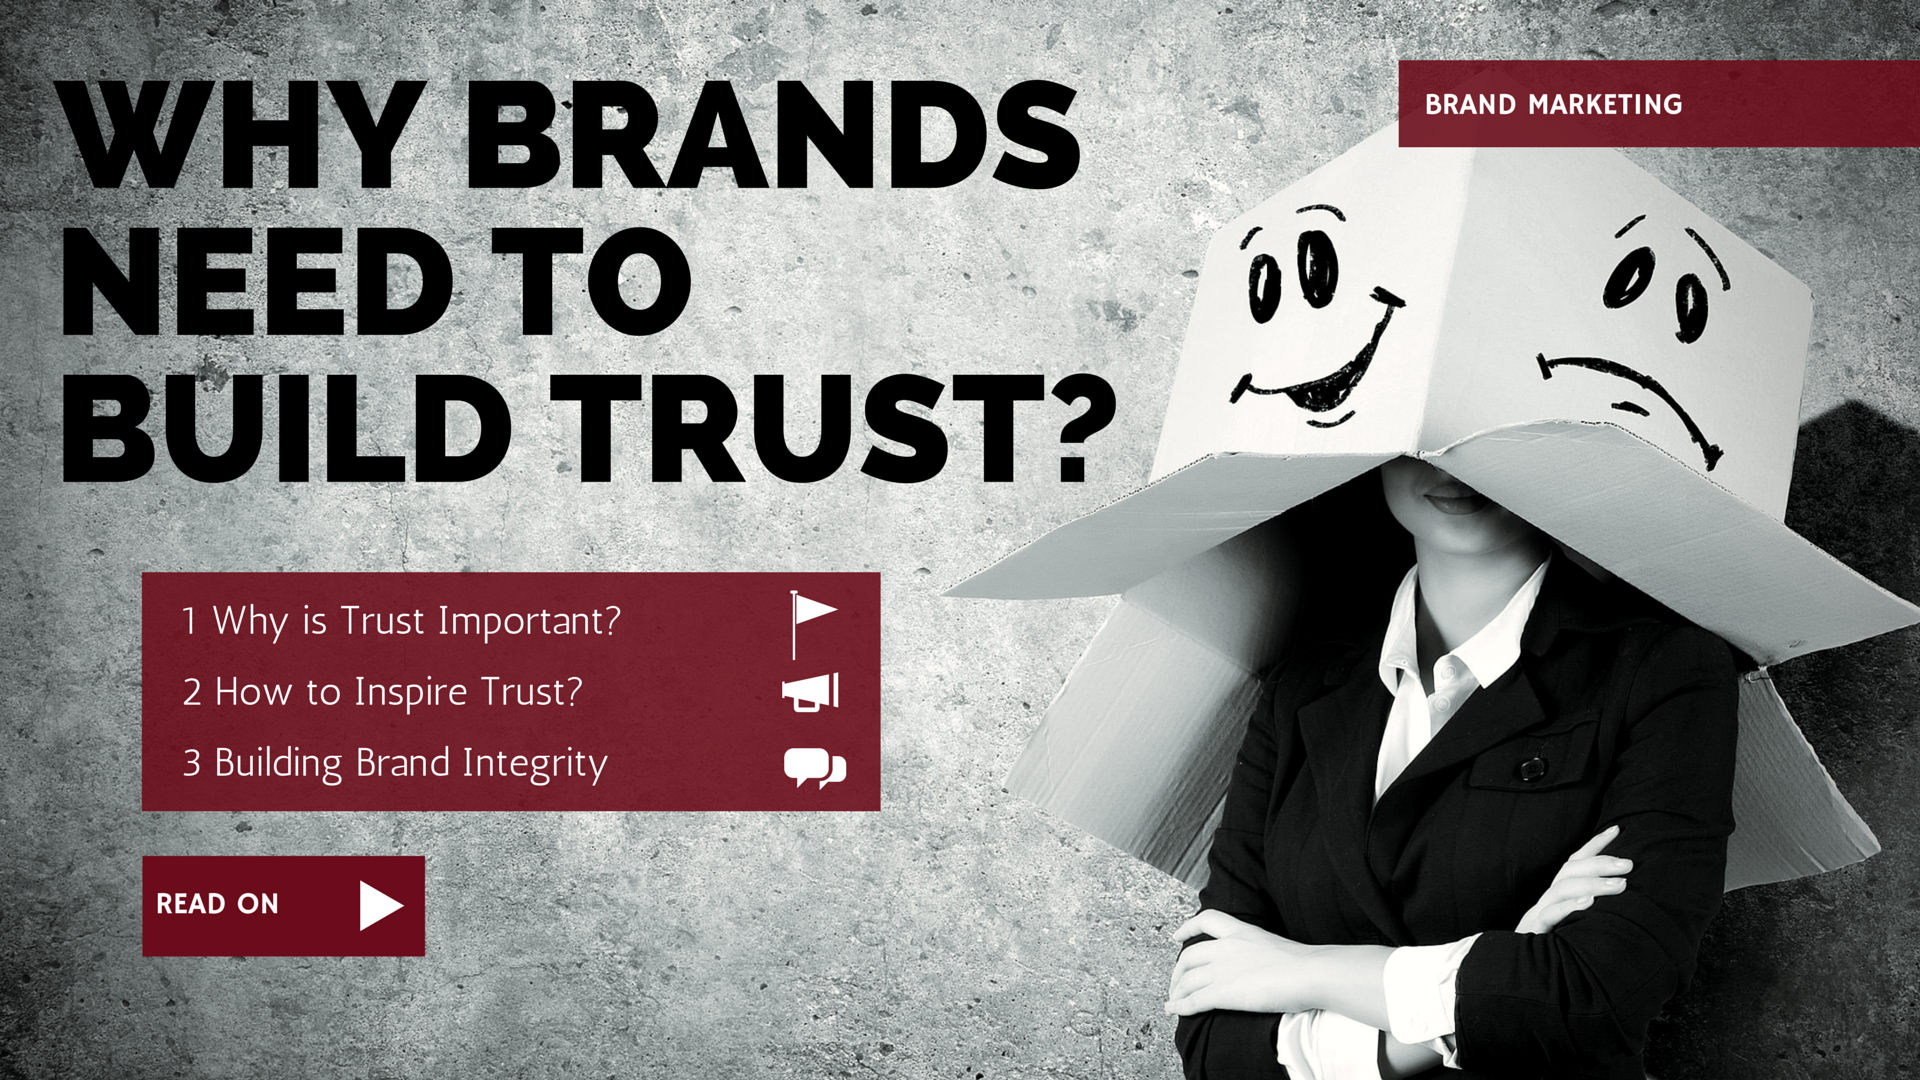 Why Brands Need to Build Trust?